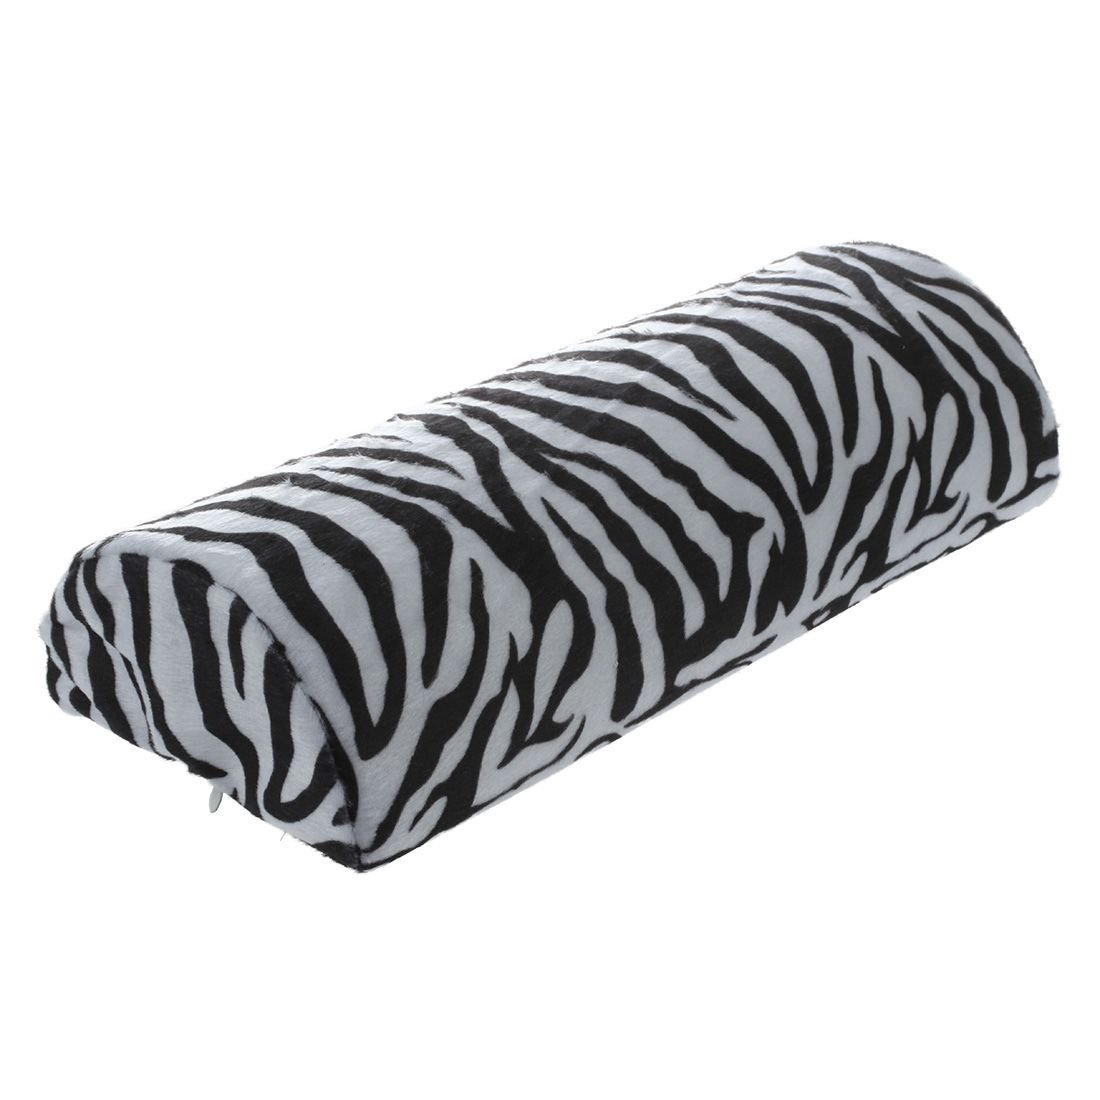 TOOGOO(R) Black With White Zebra Stripe Hand Rest Soft Cushion Pillow Nail Art Design Manicure Half Column SODIAL 045229